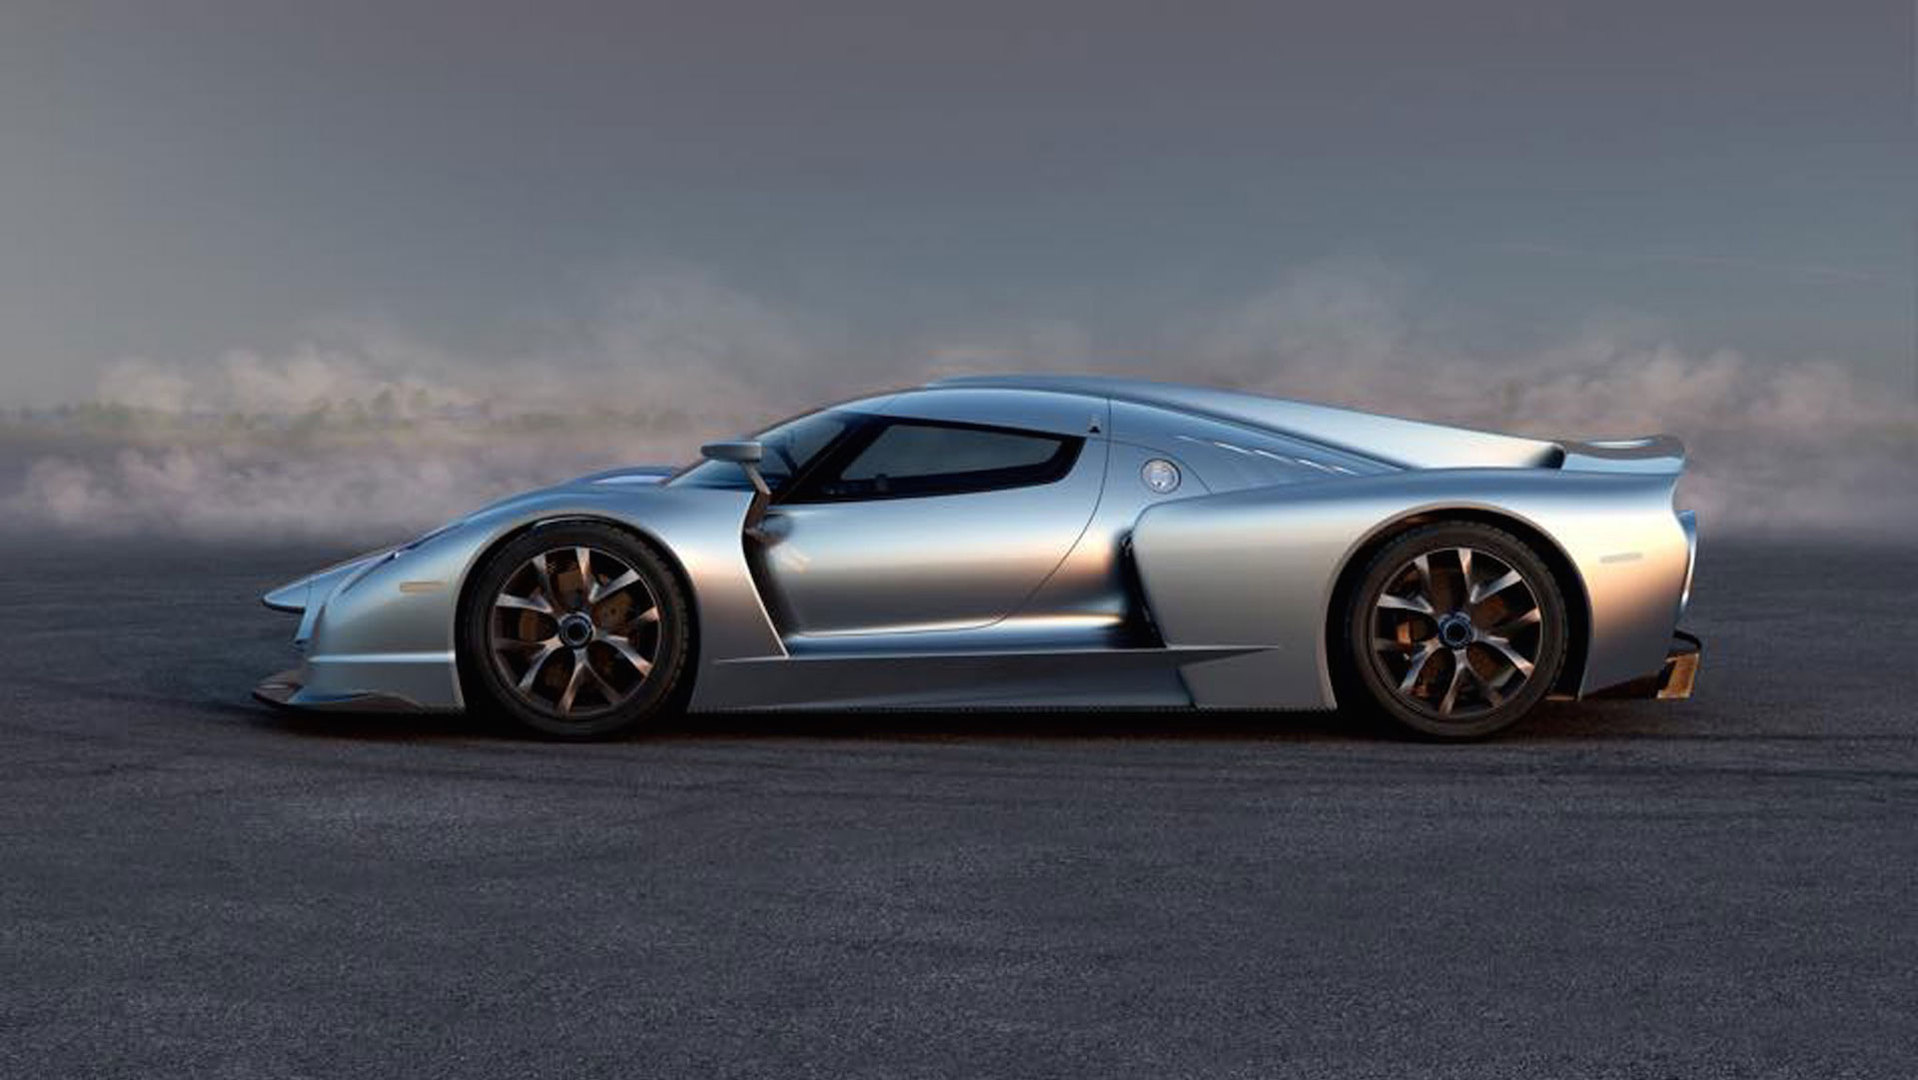 800-hp SCG003 will be sold as a kit car in the U.S.